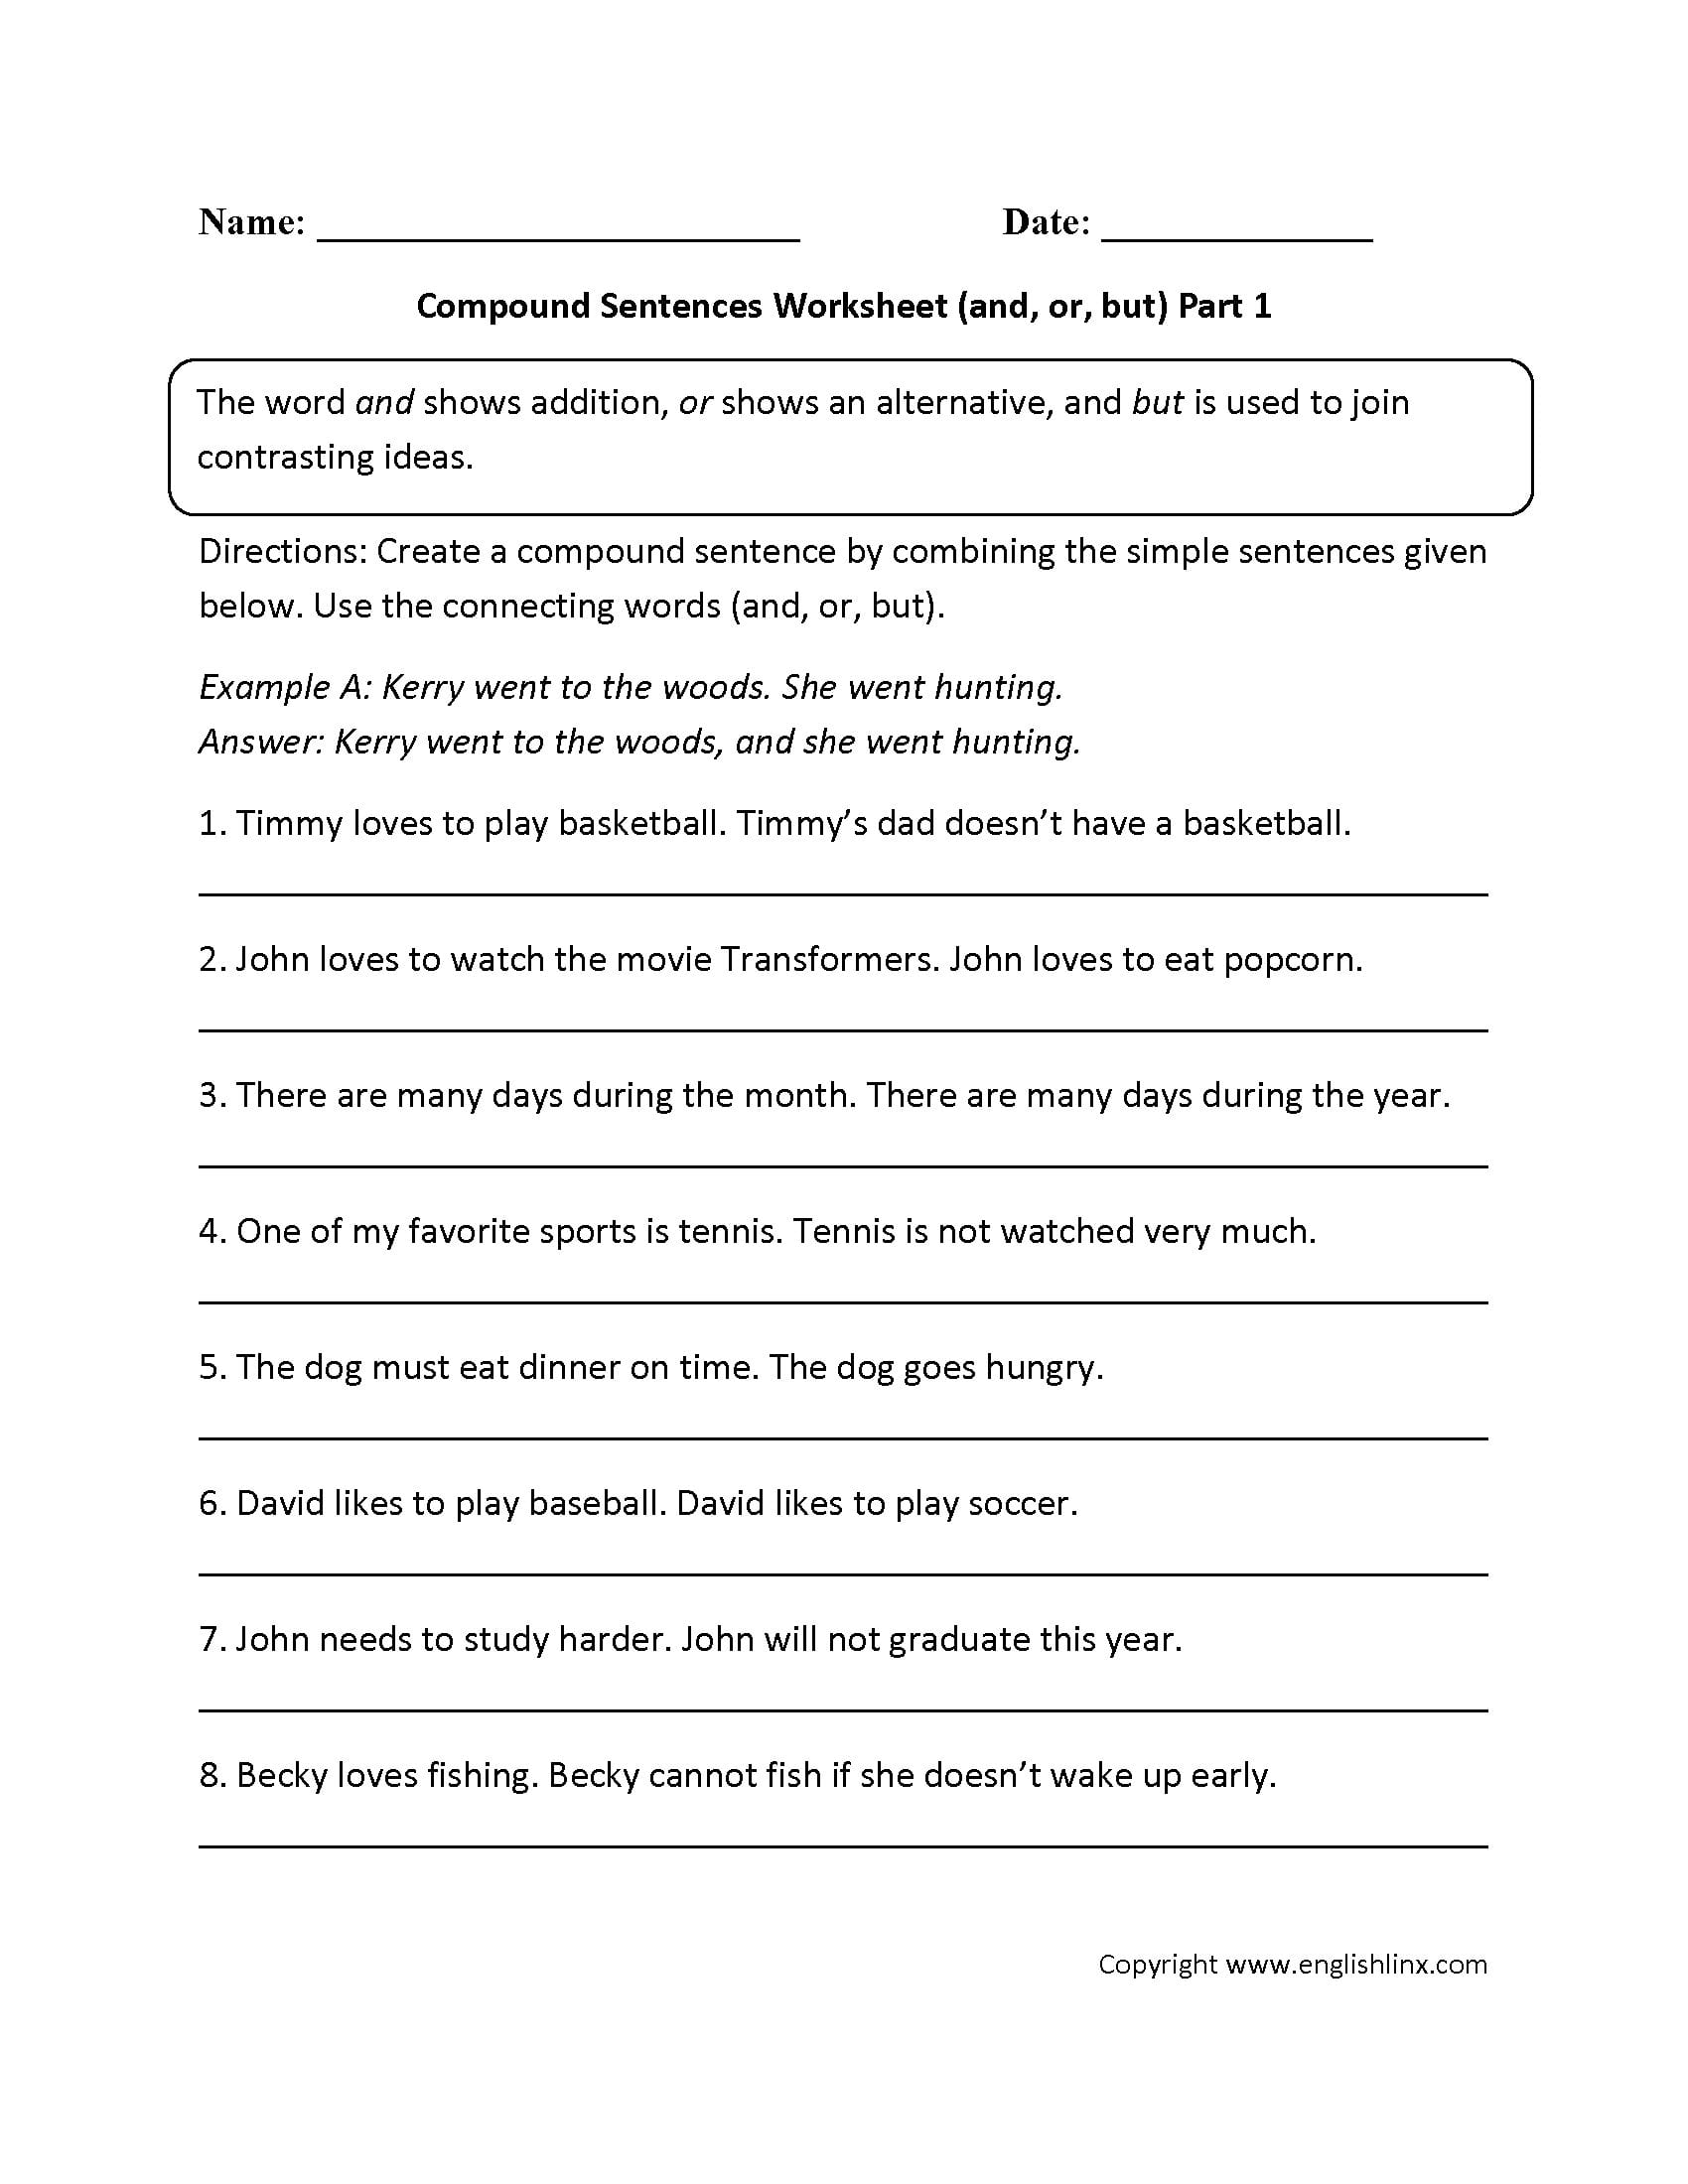 Compound Sentences Worksheet With Answers